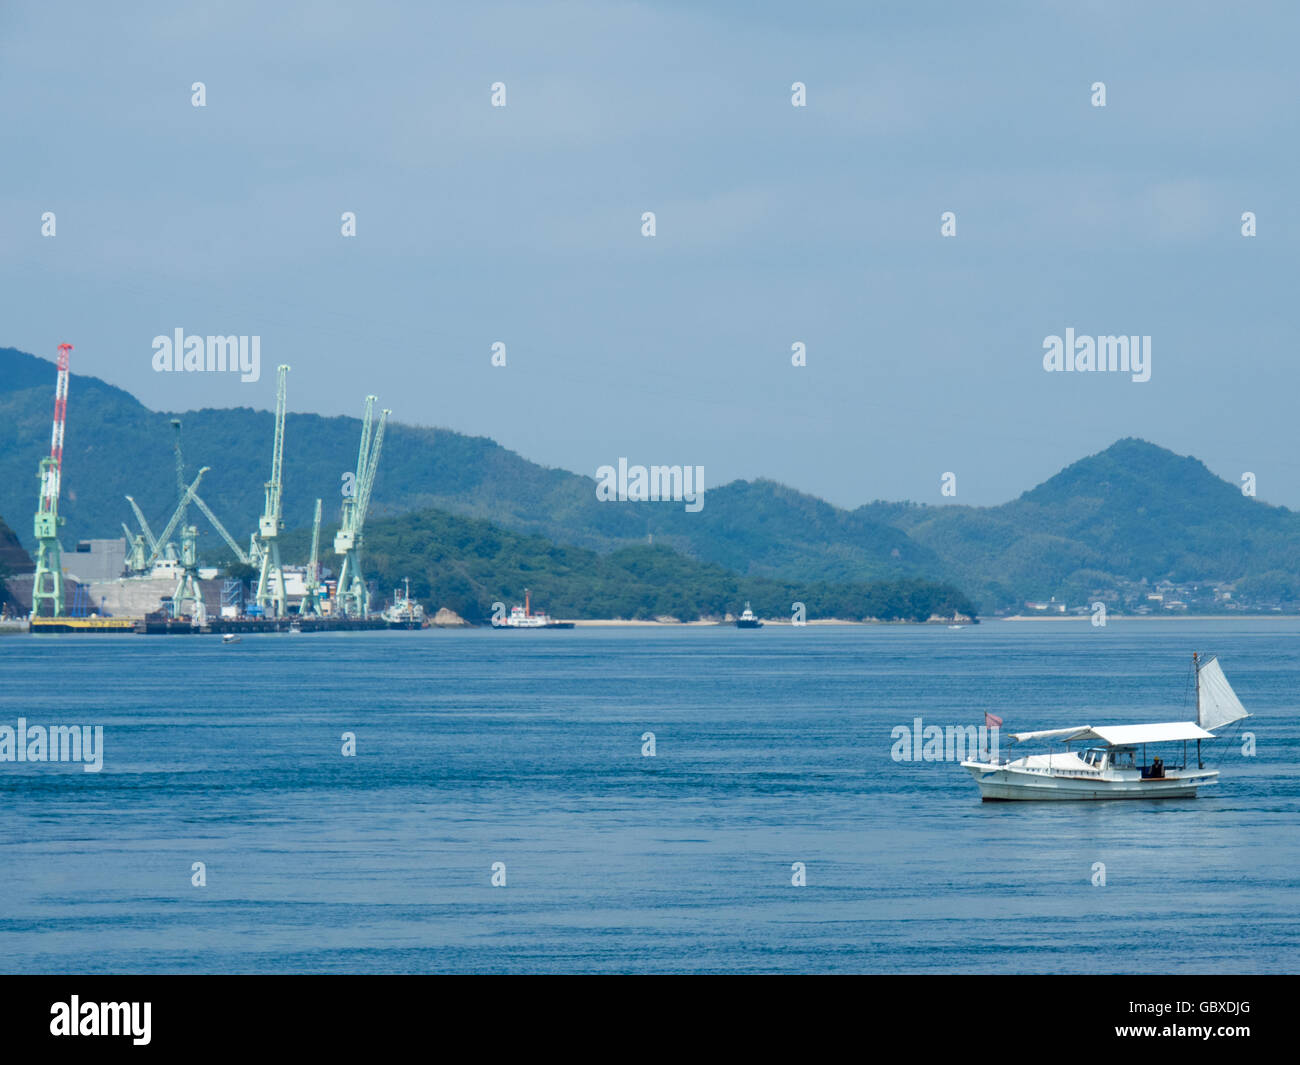 A small traditional Japanese fishing boat in the Seto Inland Sea and ship building facilities on the Innoshima Island. - Stock Image